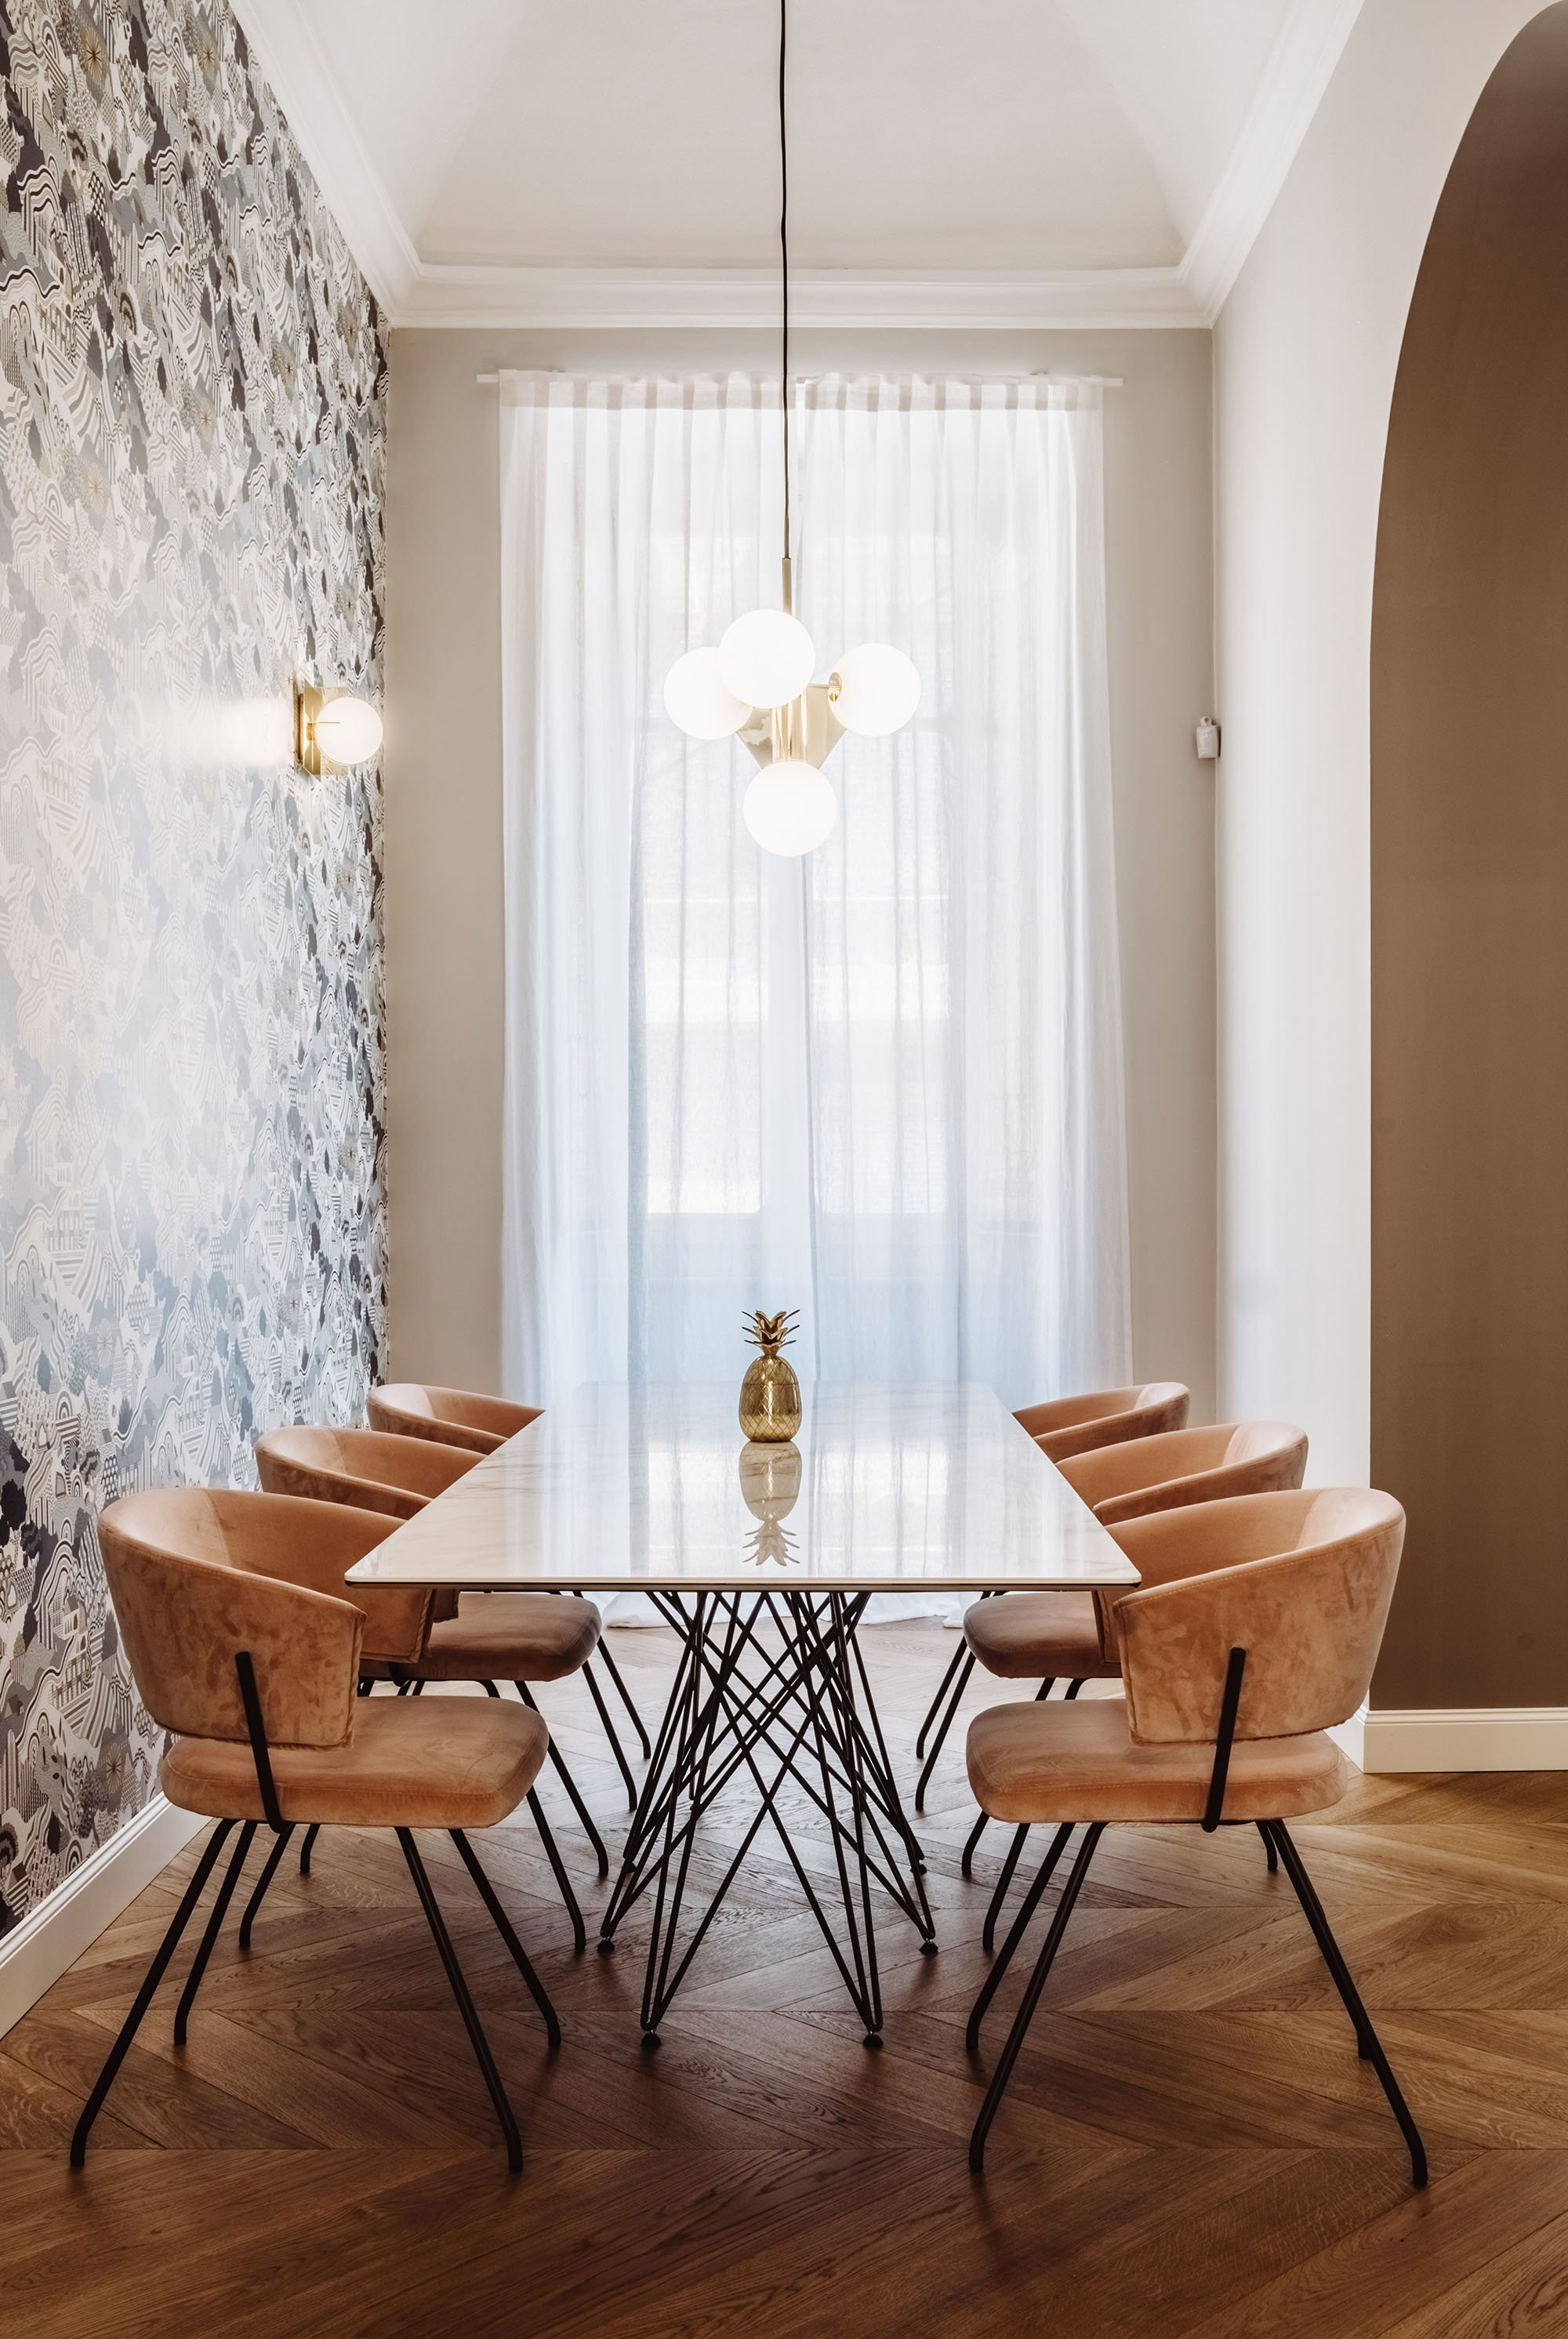 A minimalist restyling with pastel tones in Turin